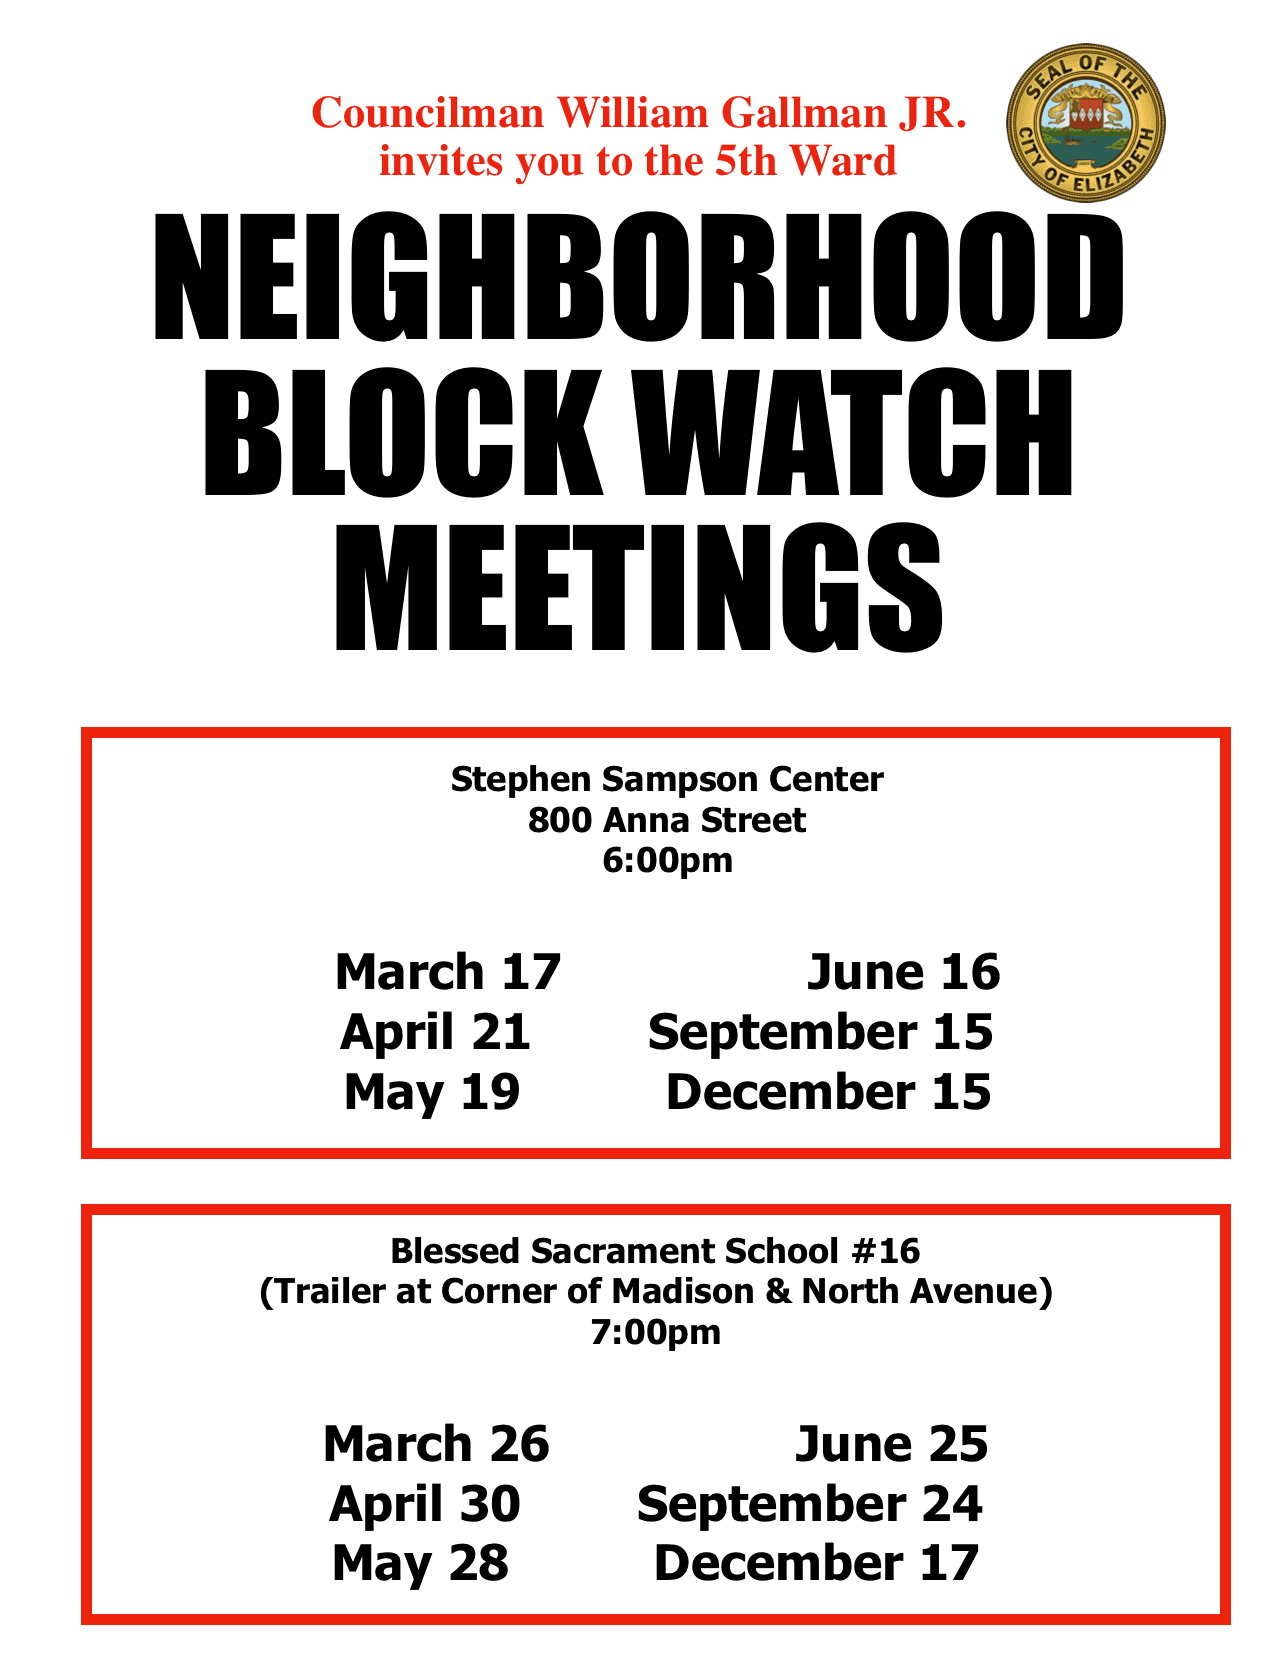 5th Ward Blockwatch